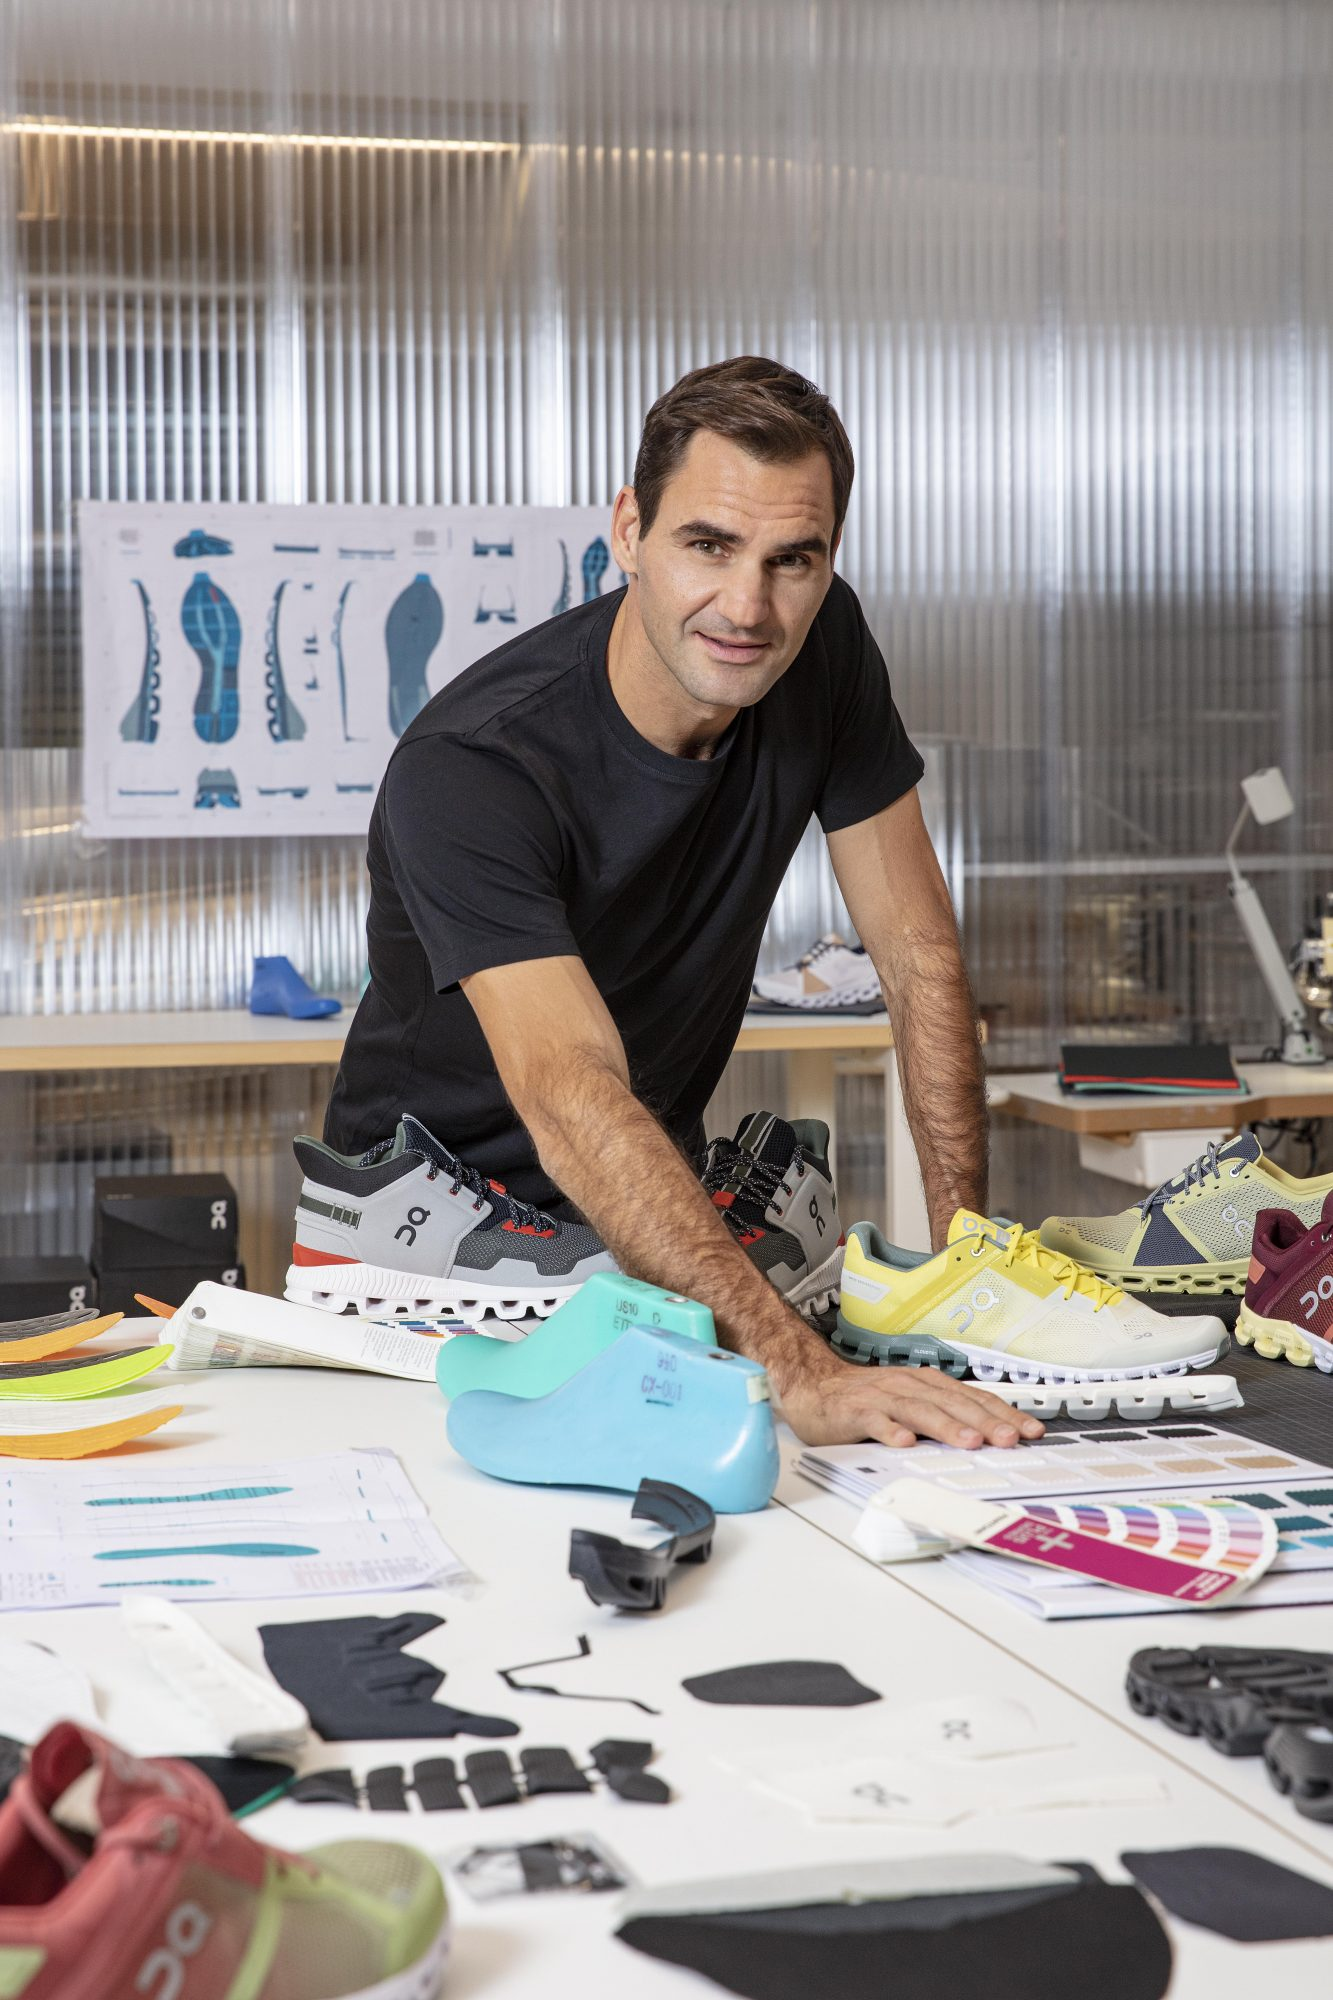 1 Roger Federer working on 2020 products